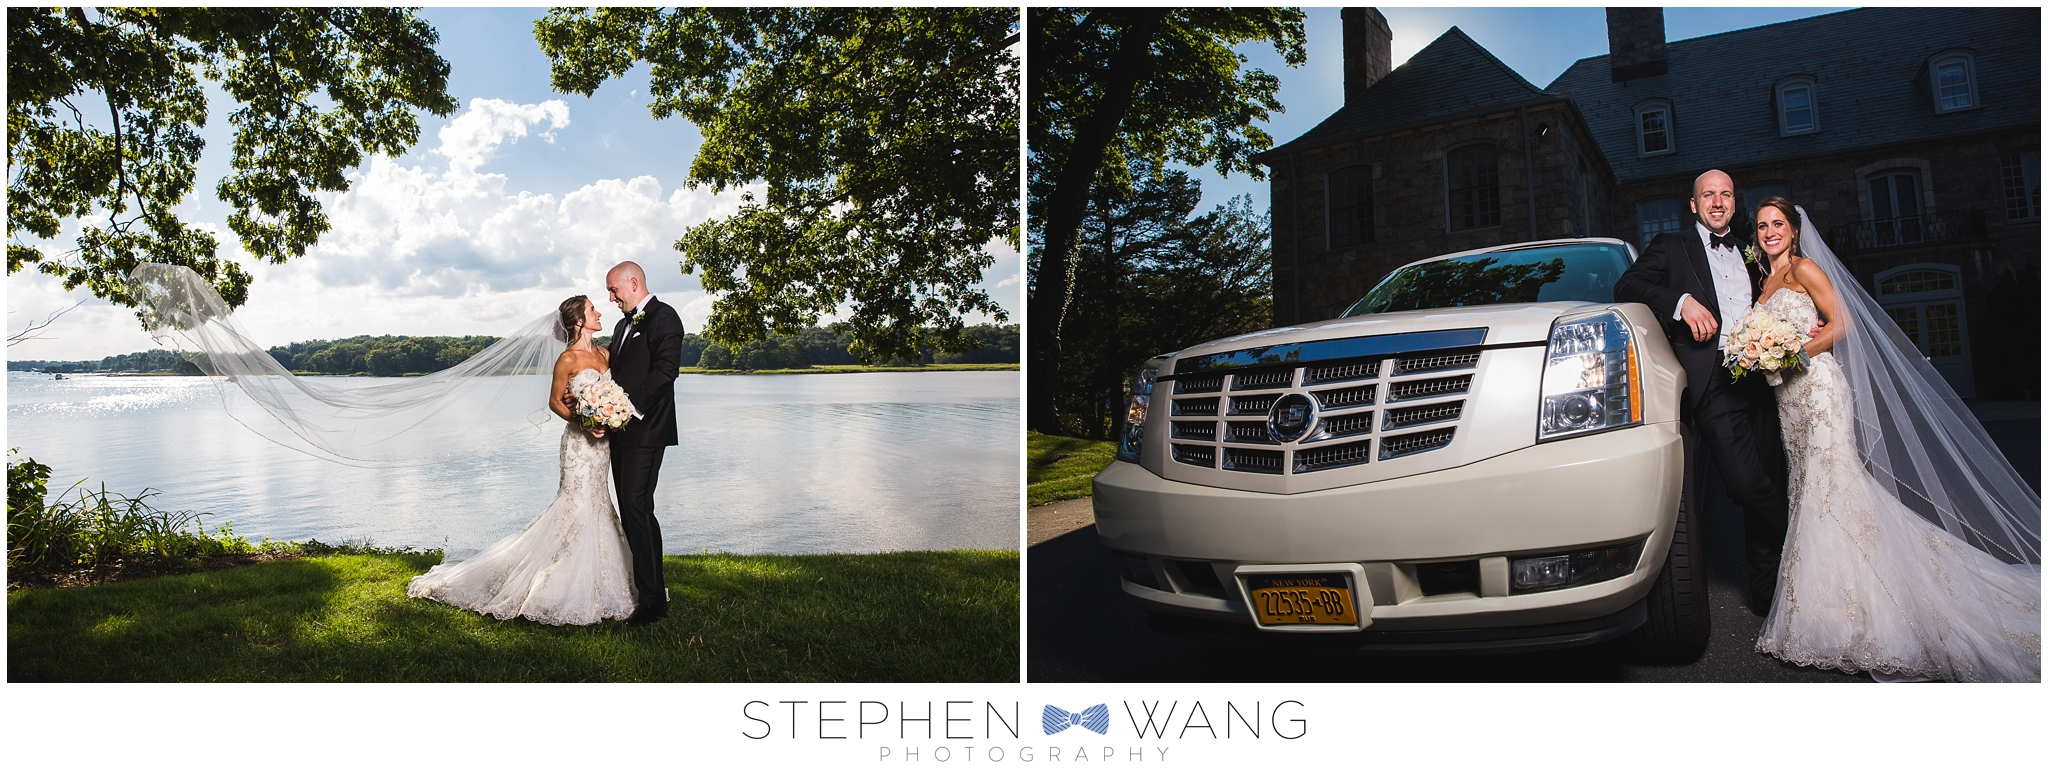 Stephen Wang Photography wedding photographer whitby castle wedding rye ny connecticut photographer philadlephia photographer pennsylvania wedding photographer bride and groom00023.jpg